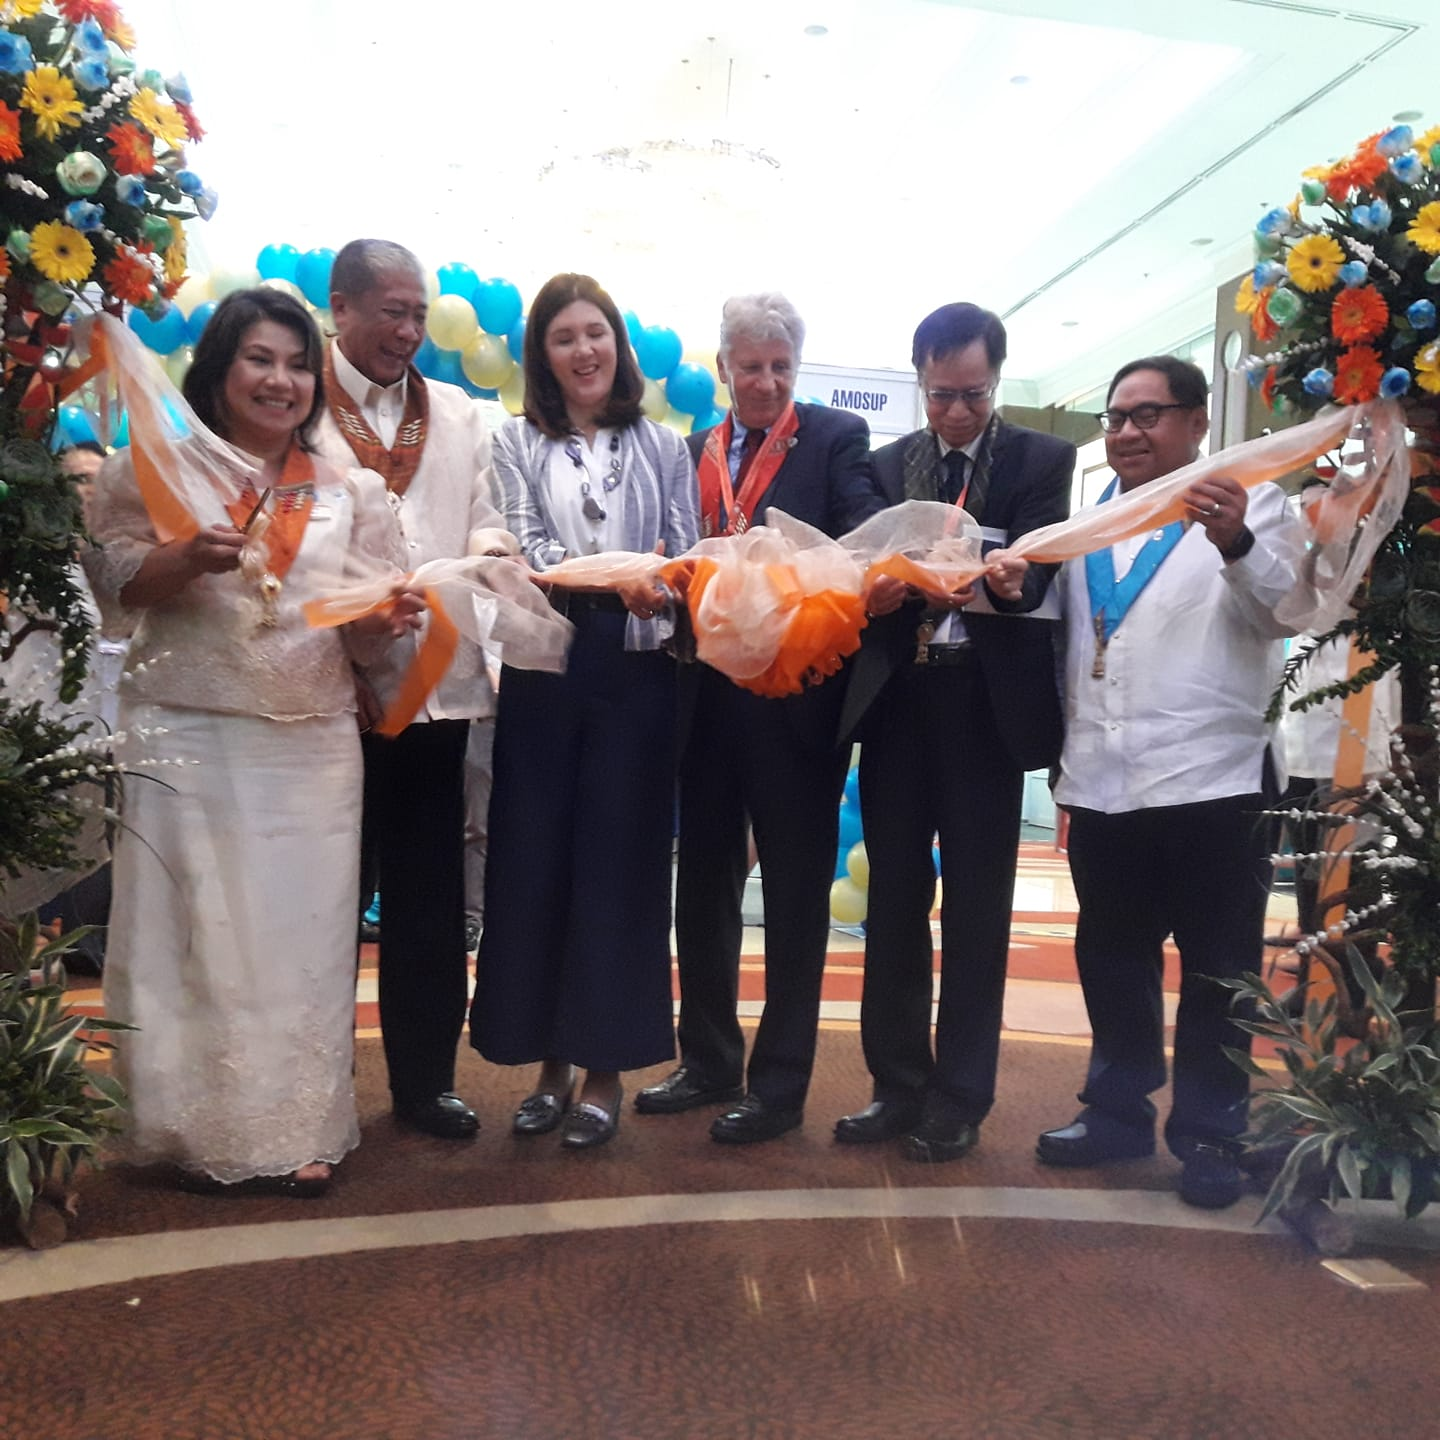 Seafarer Family International Congress Celebrates Families